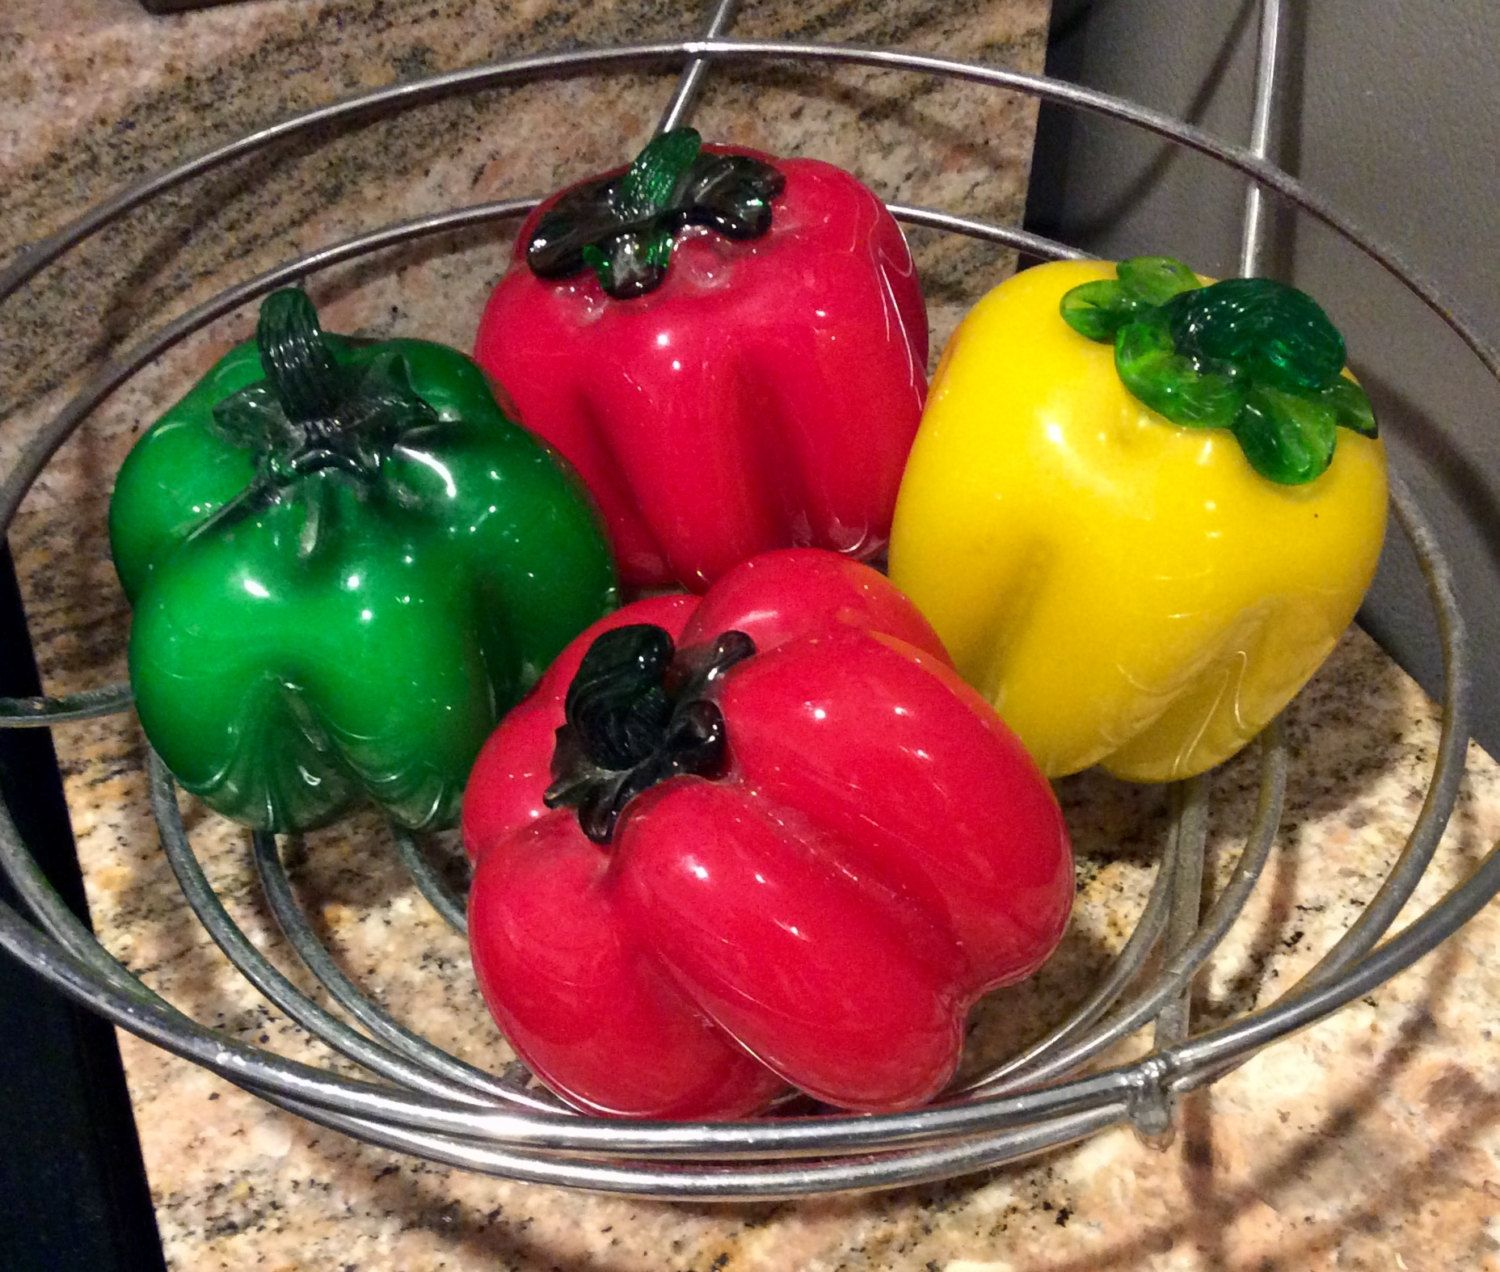 7 Vintage Blown Glass Vegetables Fruit Decor Retro Fruit Etsy Stuffed Peppers Glass Blowing Stuffed Bell Peppers